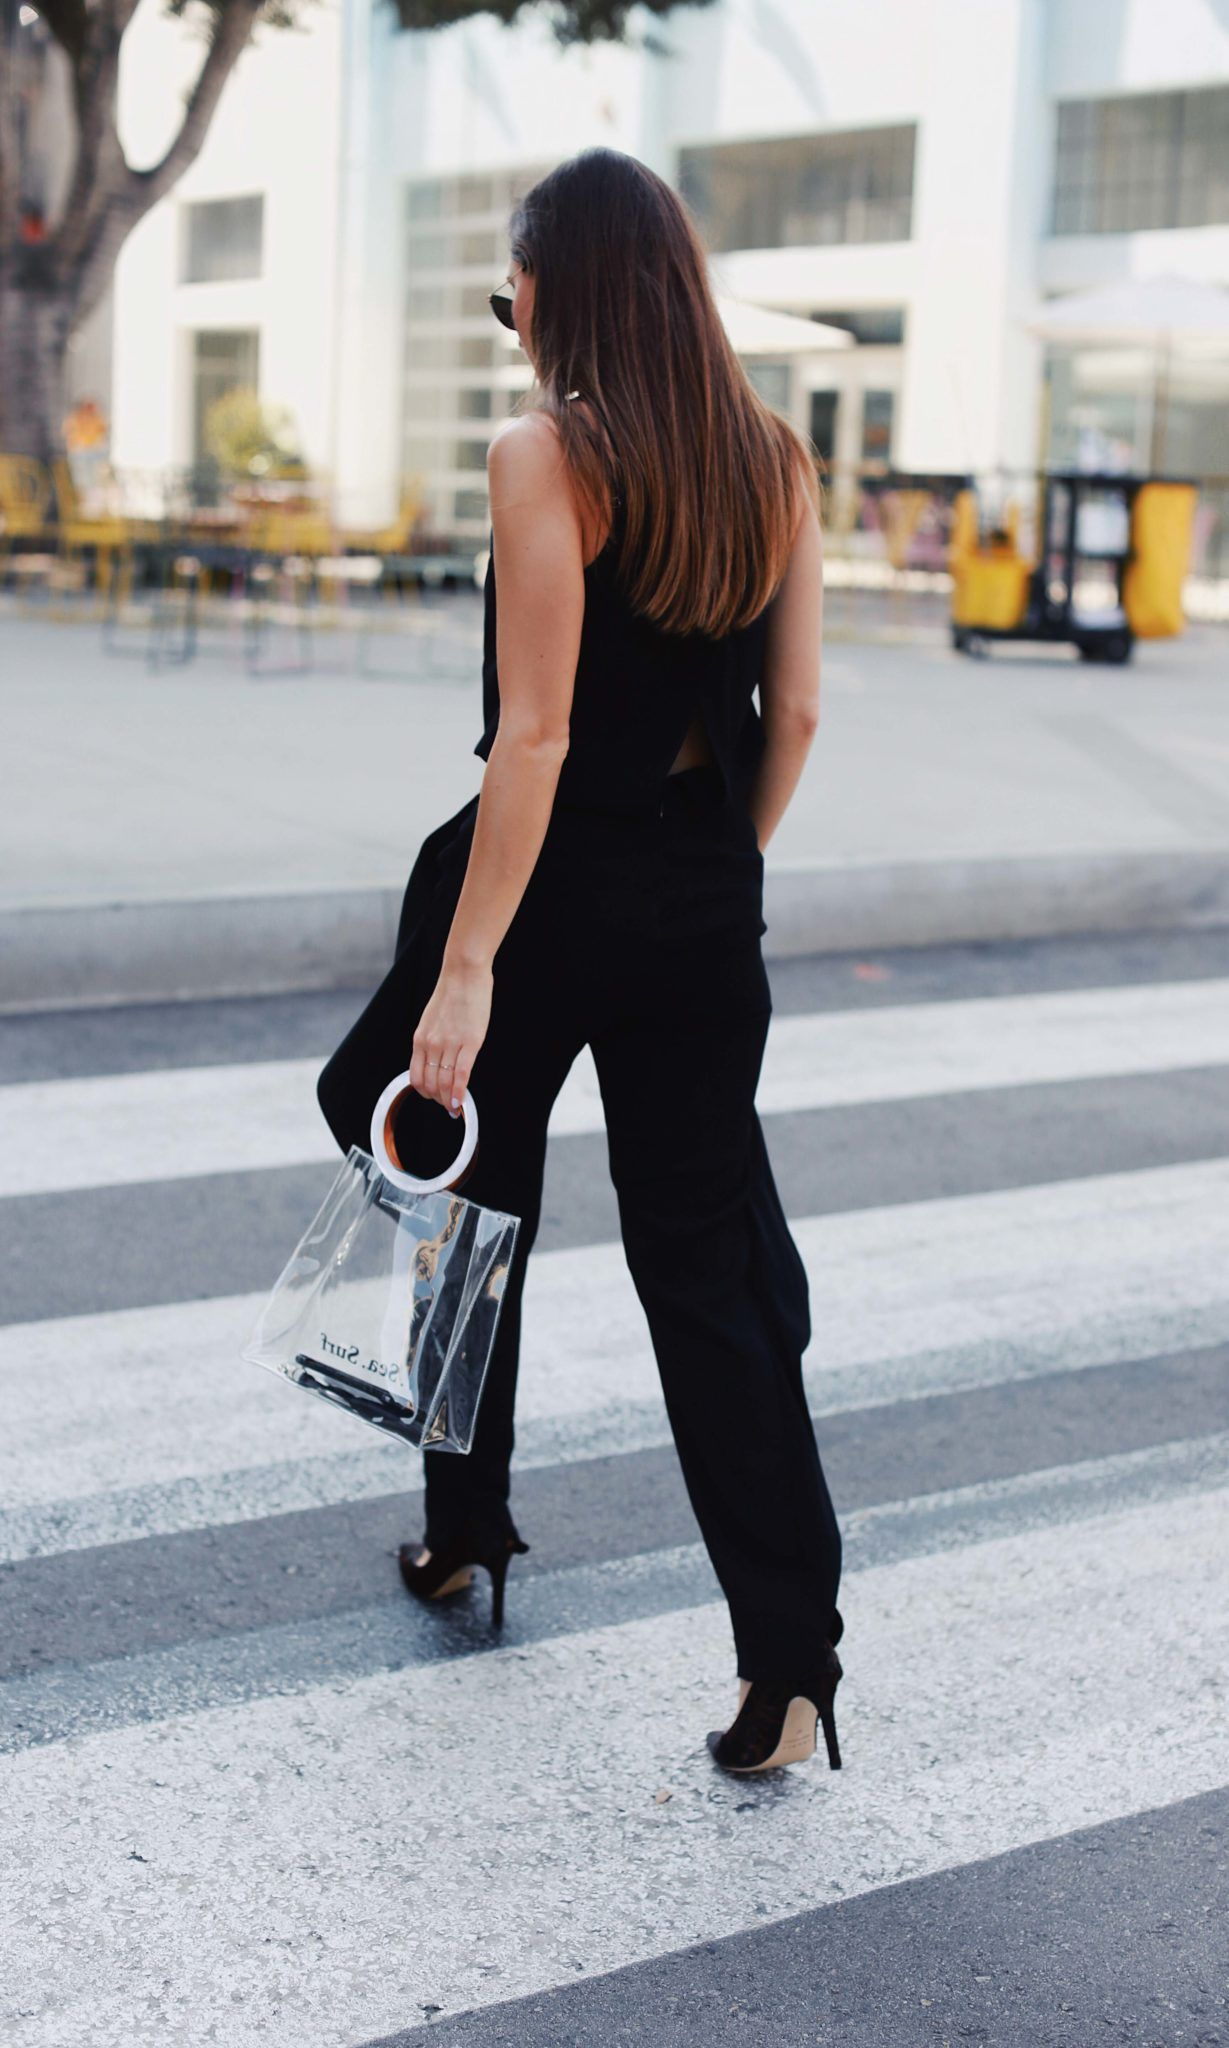 844c225f66d The Black Jumpsuit  A Fall Transitional Outfit you can never go wrong with